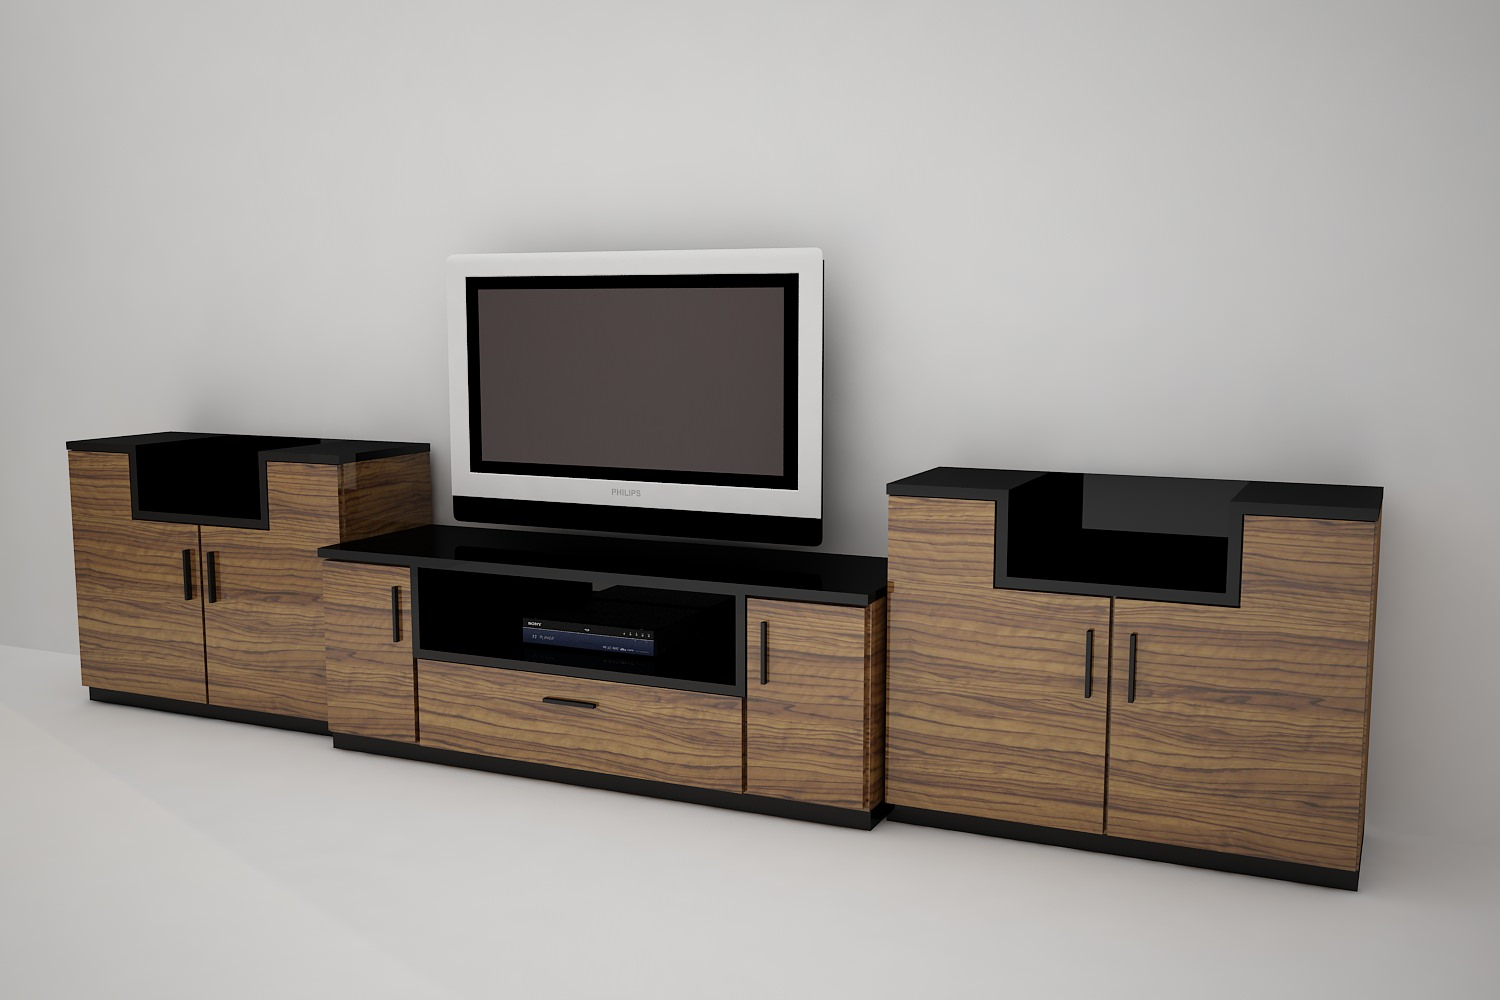 tv stand 3d model max obj 3ds dxf. Black Bedroom Furniture Sets. Home Design Ideas